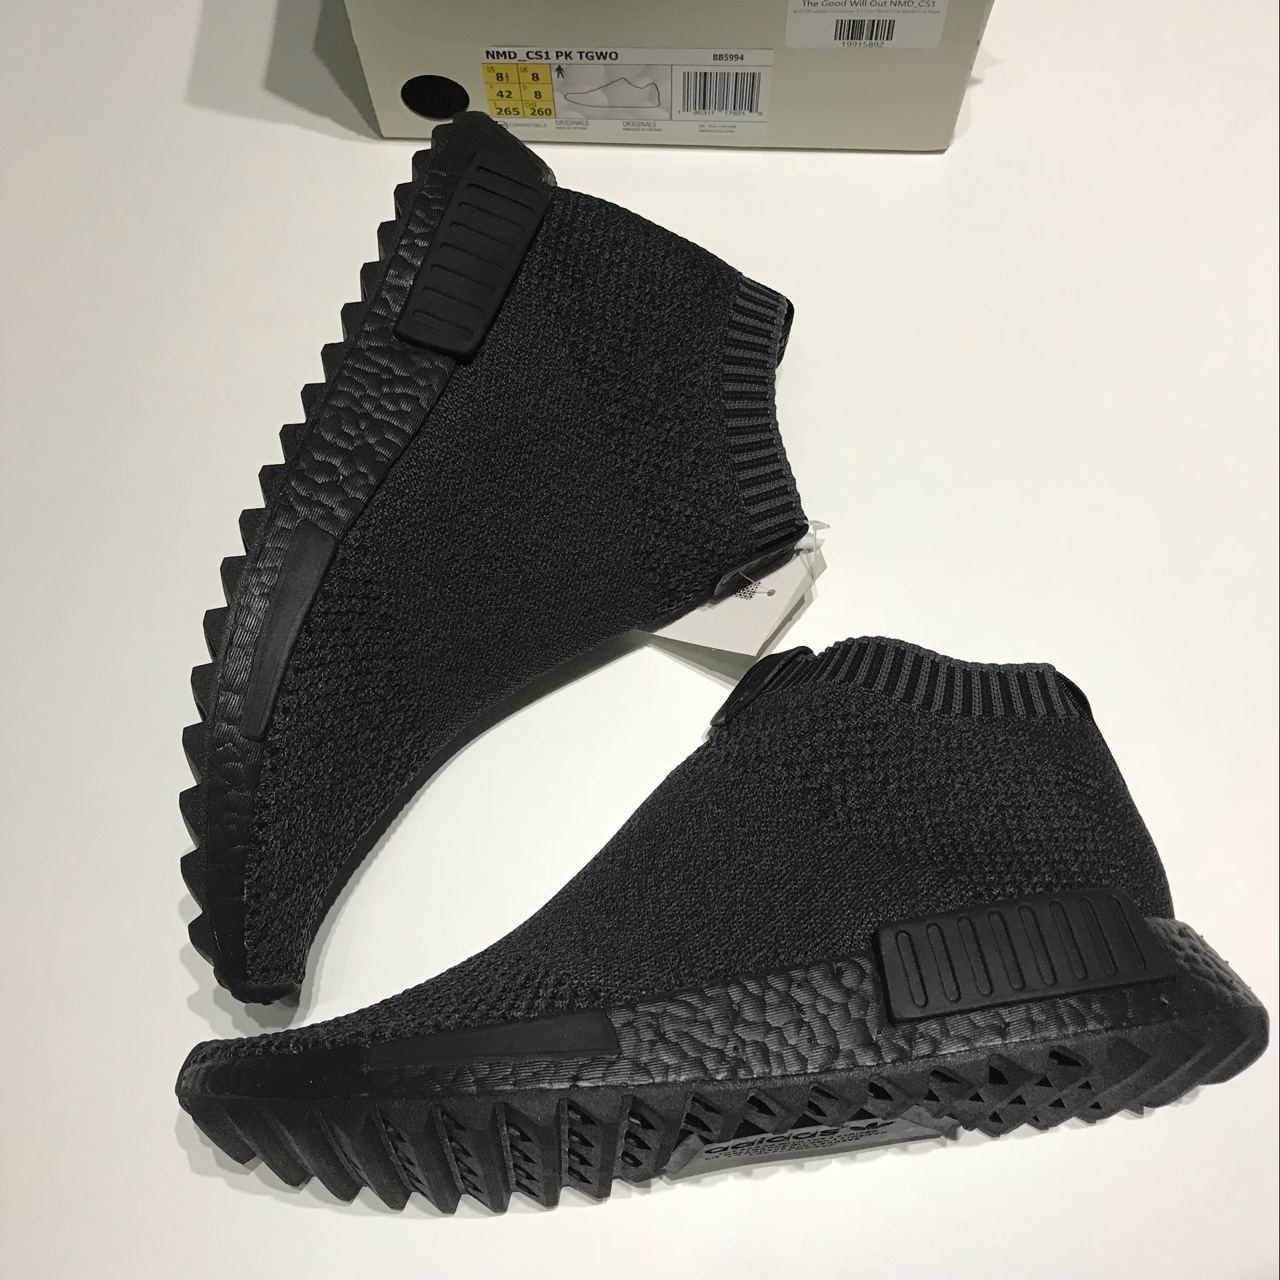 Adidas NMD CS1 PK x The Good Will Out Brand new in Depop